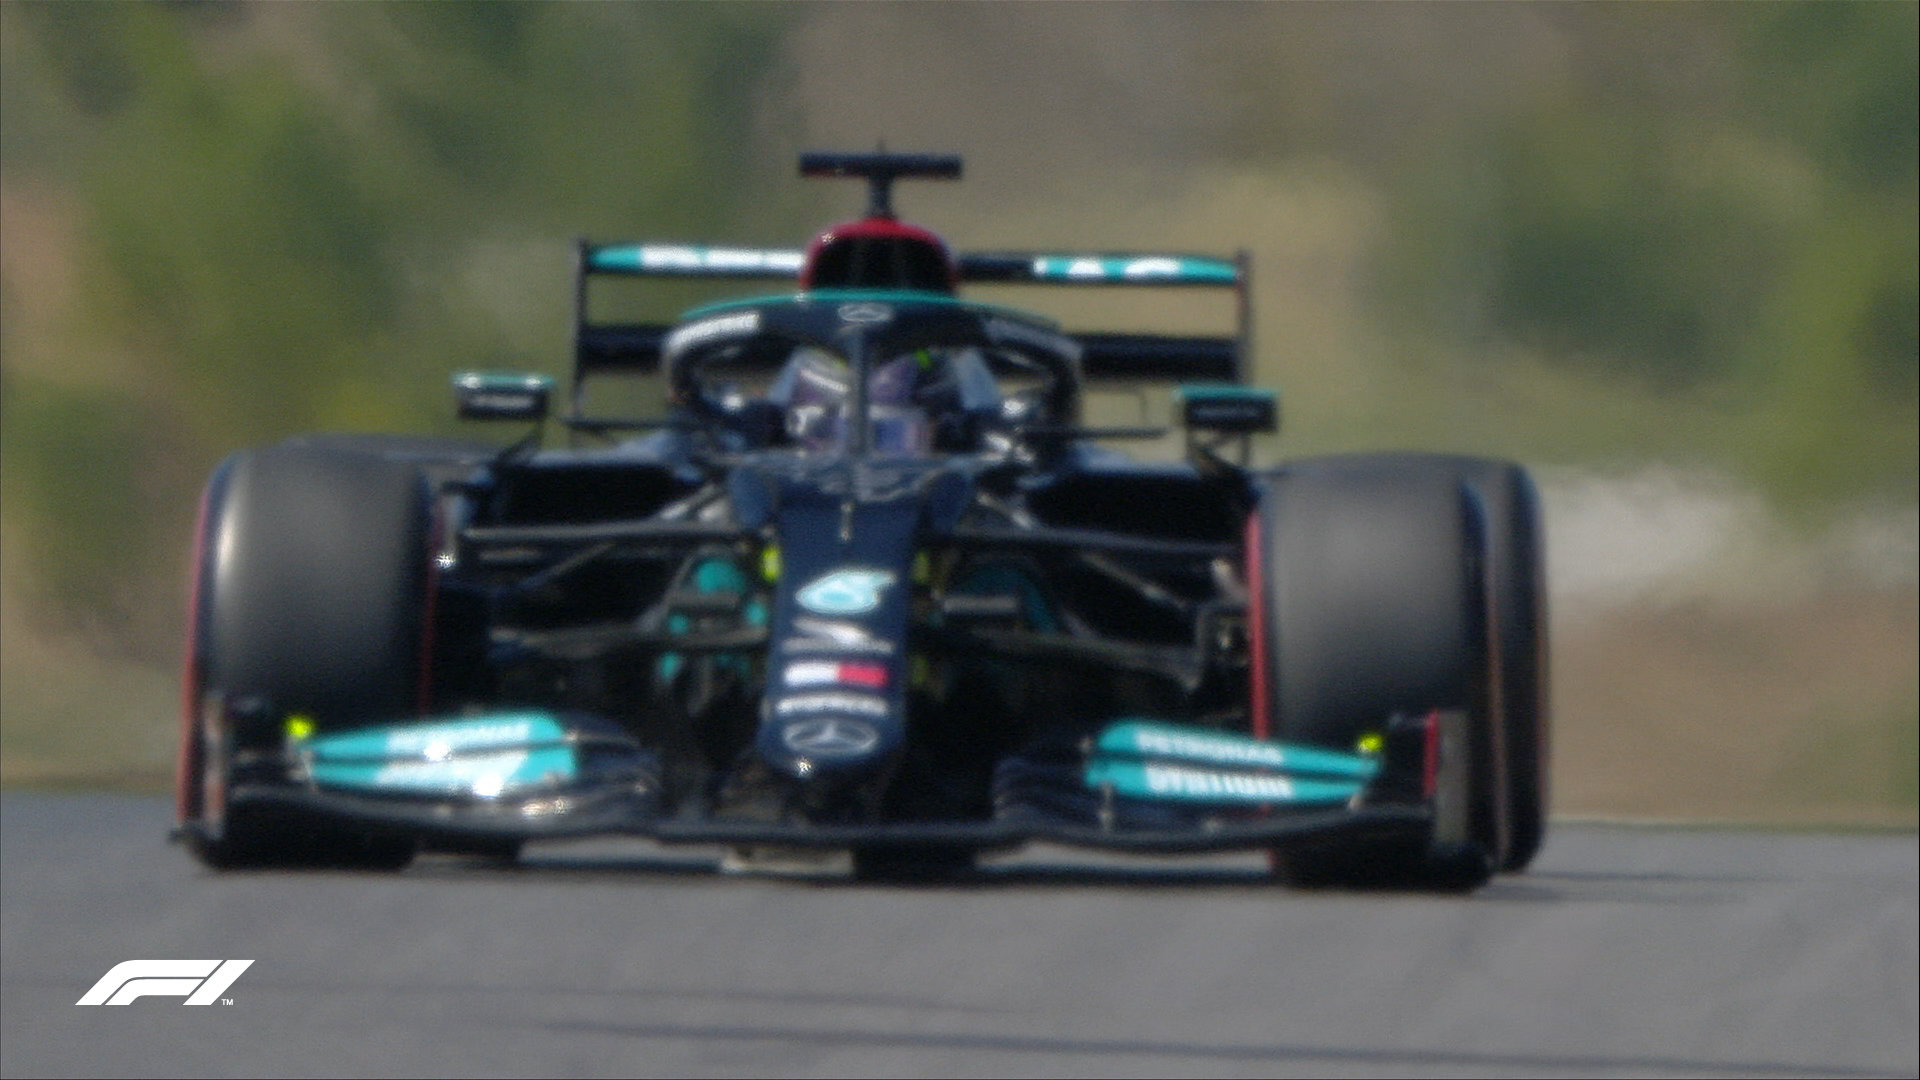 Lewis Hamilton of Mercedes AMG F1 driving in the FP1 of the Portuguese Grand Prix on Friday, April 30, 2021.